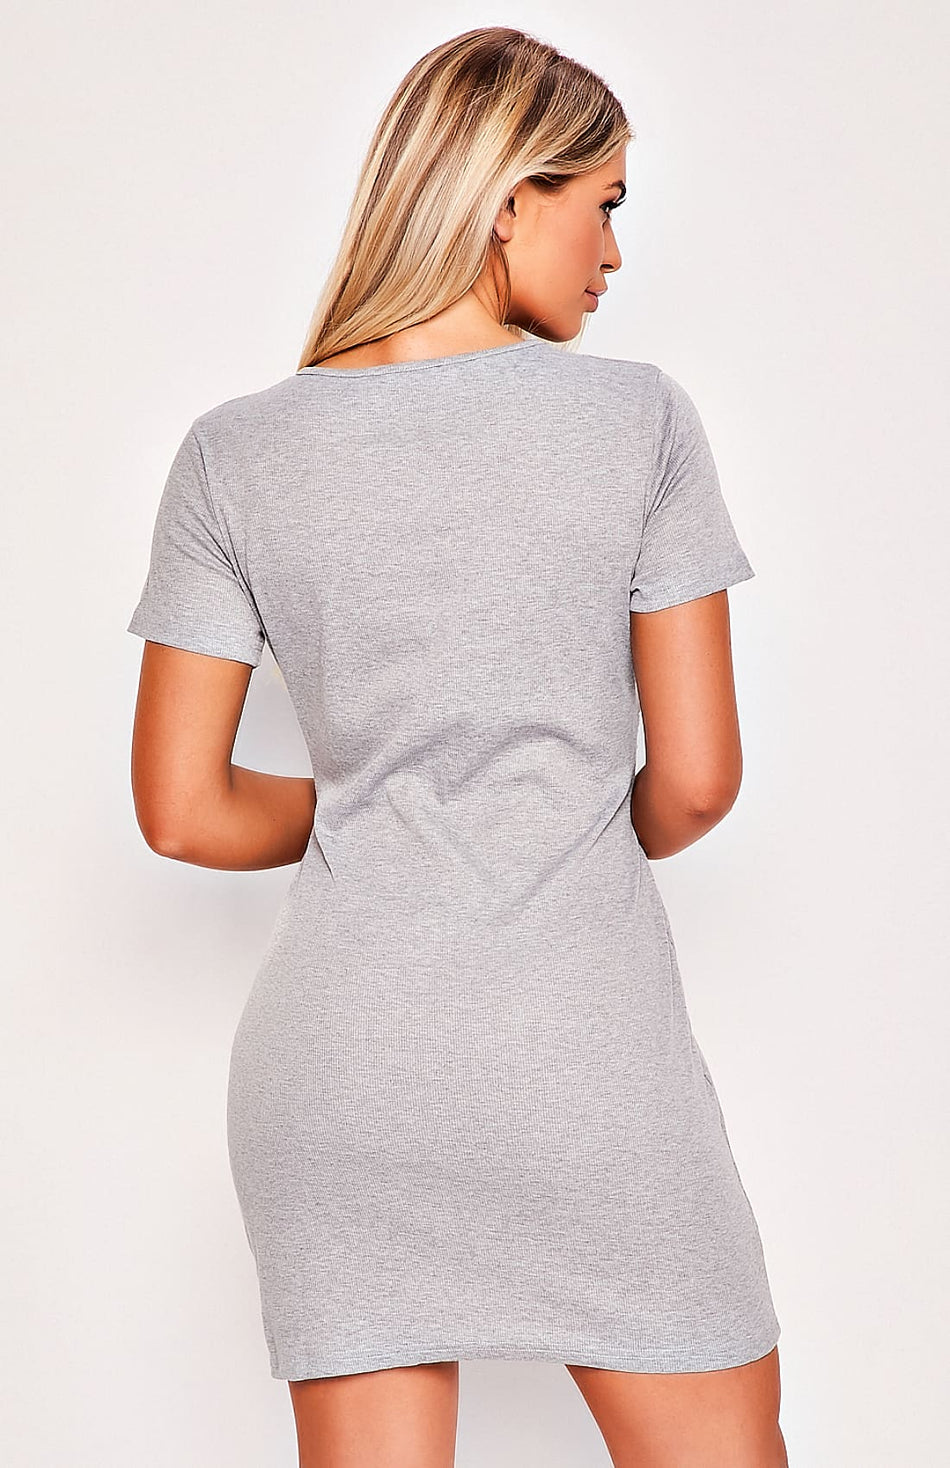 Grey Waist Belt Mini Dress